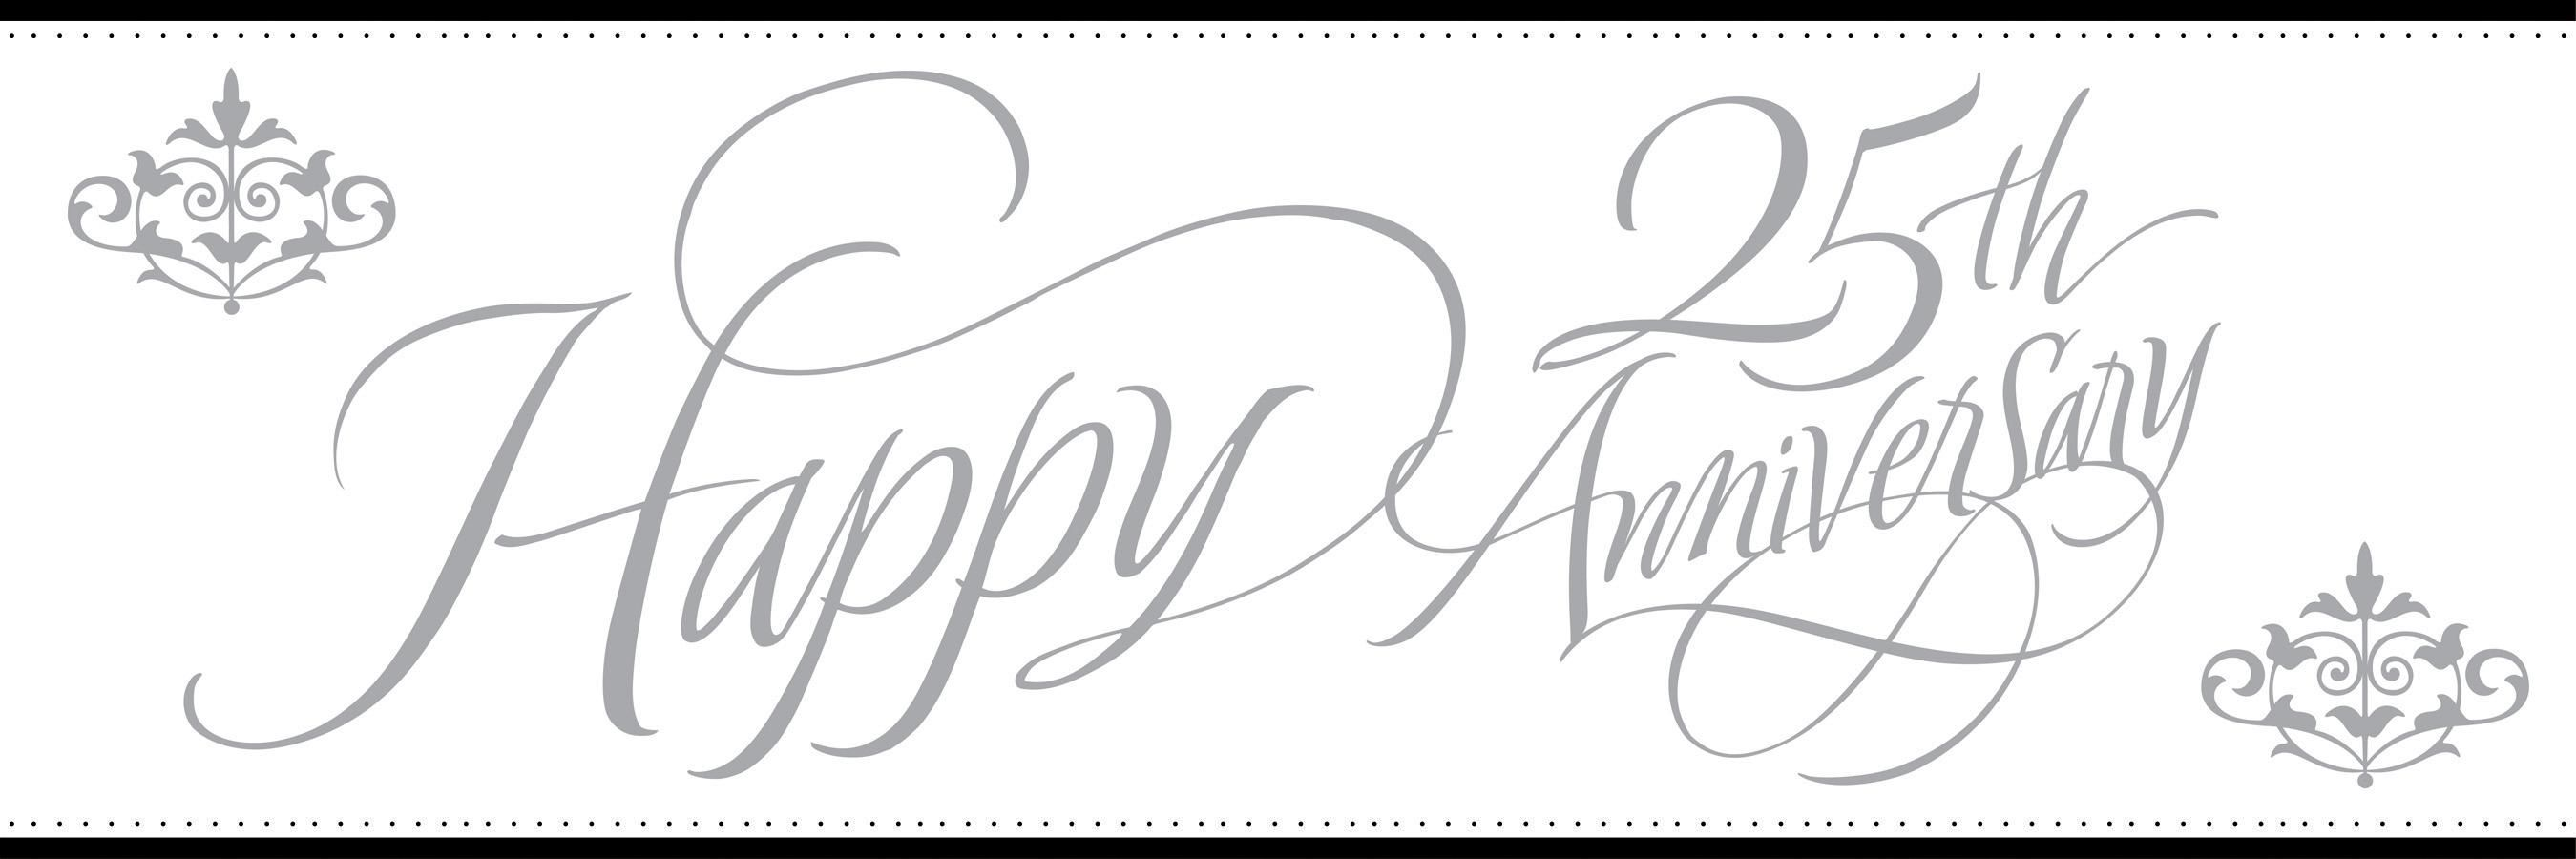 50th wedding anniversary black and white clipart svg freeuse library free 25th anniversary clip art - Google Search | Vector Art | 50th ... svg freeuse library